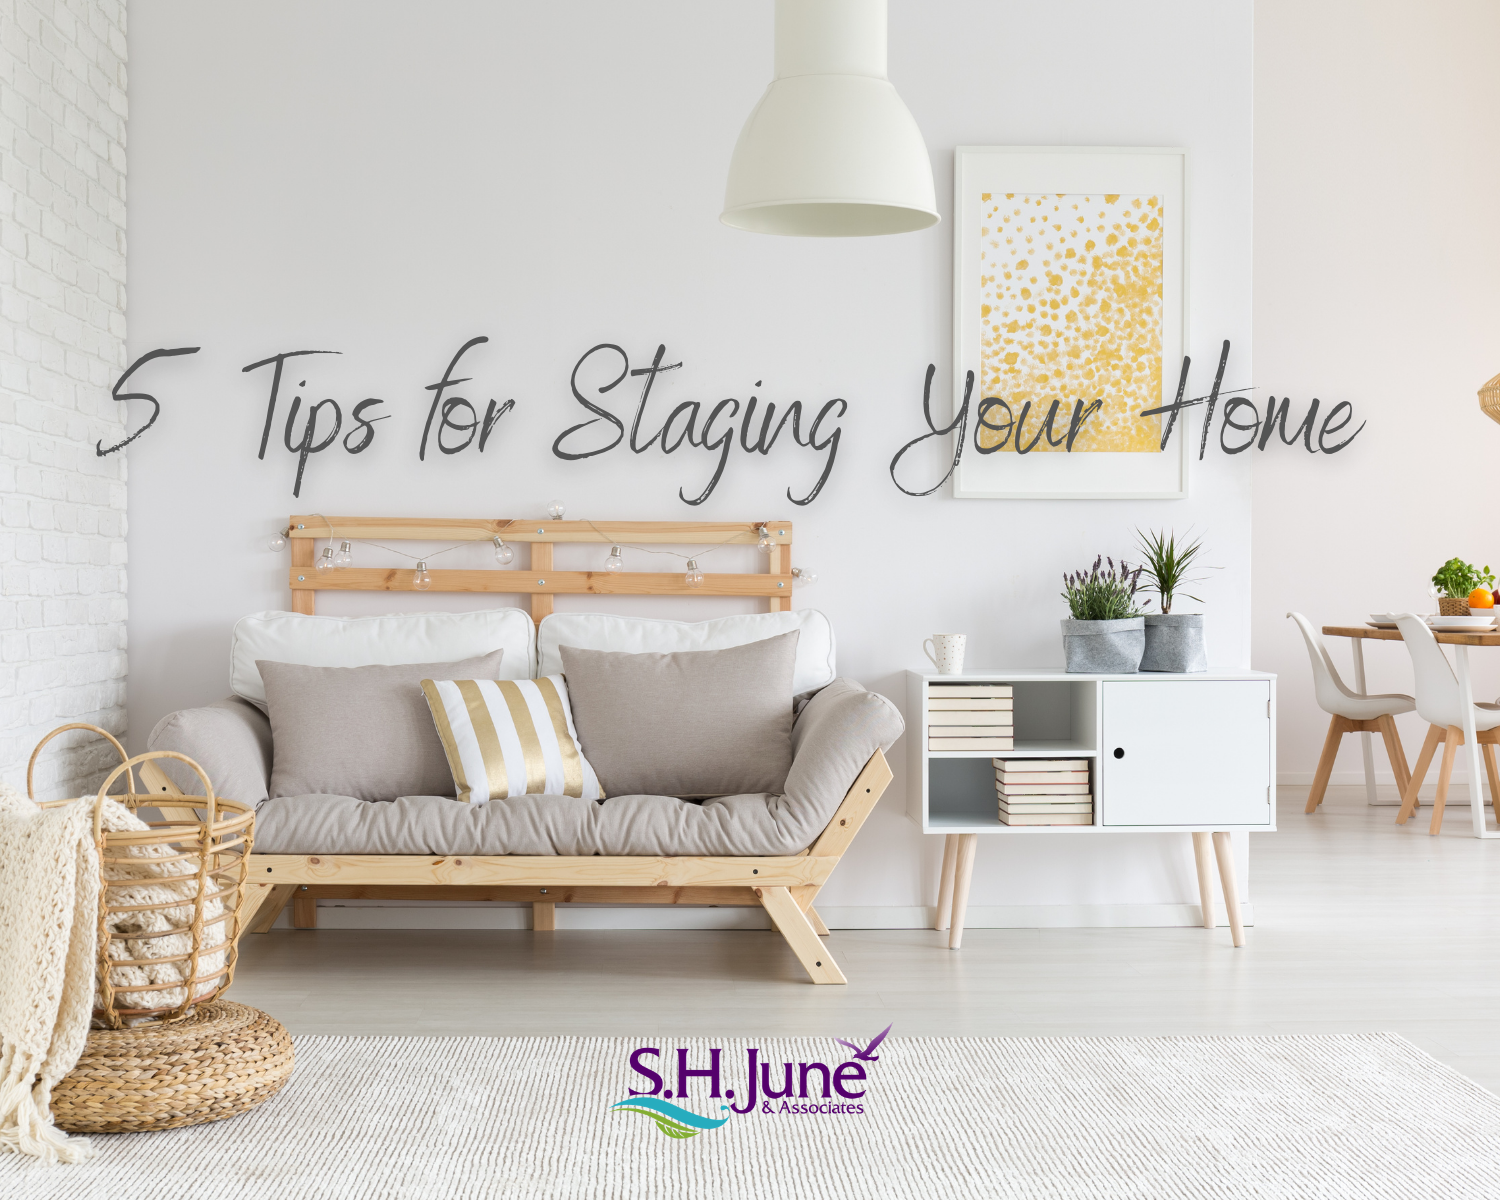 Staging your home is important to get your home sold quickly and for the highest price.